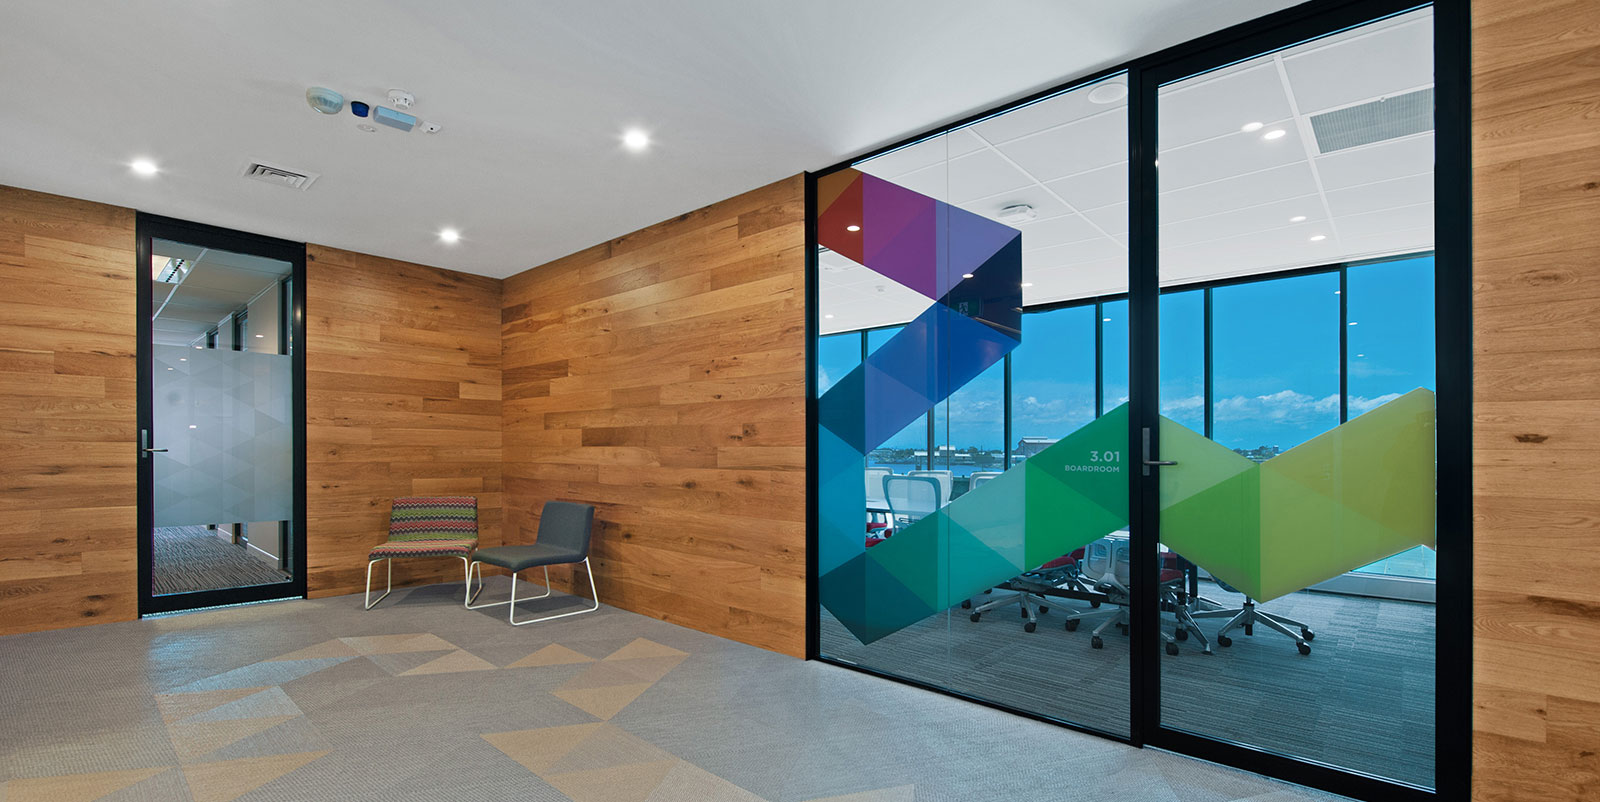 office interior design sydney. Office Design Out Of A Box? Not In Million Years \u2026 But An Team That Thinks Outside The Now, That\u0027s What You Need. Interior Sydney